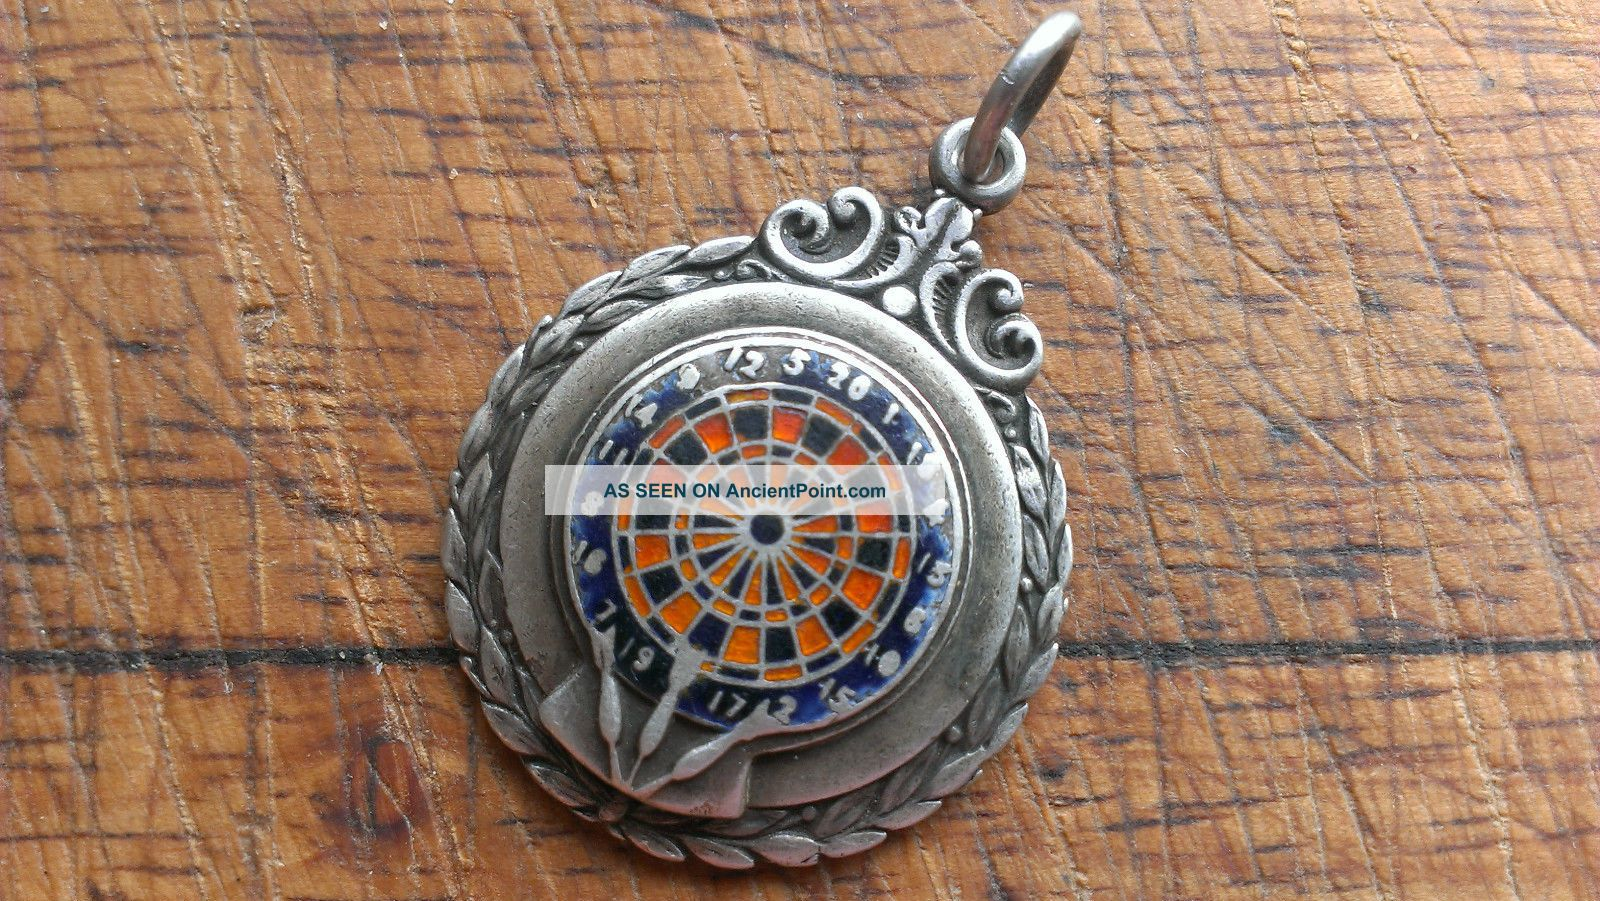 Vintage C 1949 Hallmarked Ornate Sterling Silver Enamel Darts Medal Watch Fob Pocket Watches/ Chains/ Fobs photo